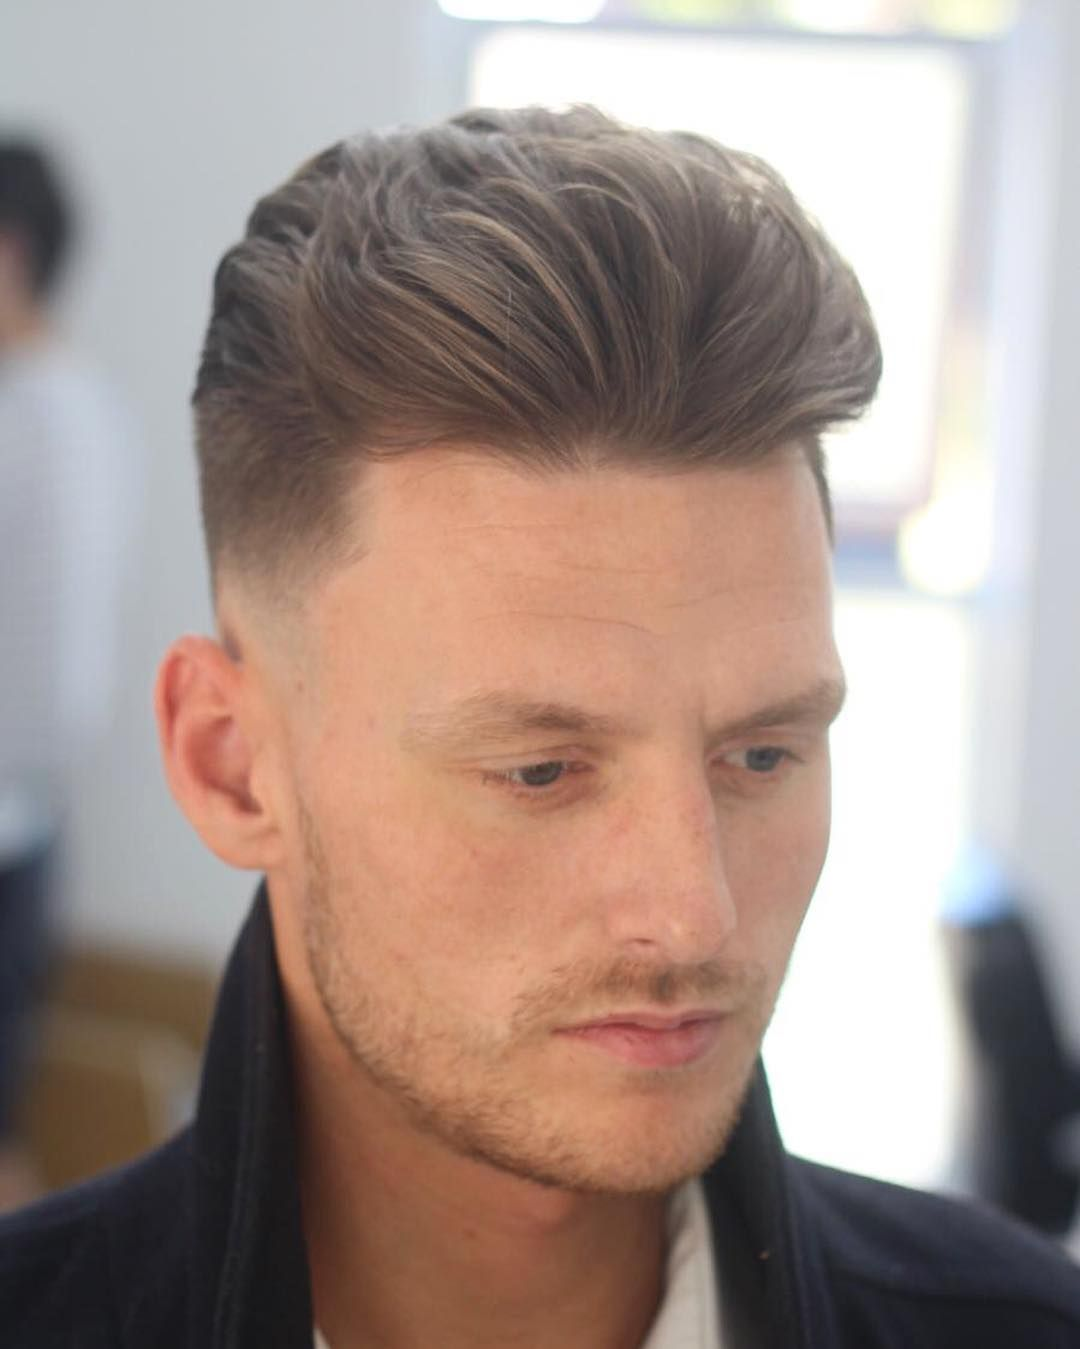 Tape up haircut for boys awesome  sumptuous tape up haircuts  the fade for classy